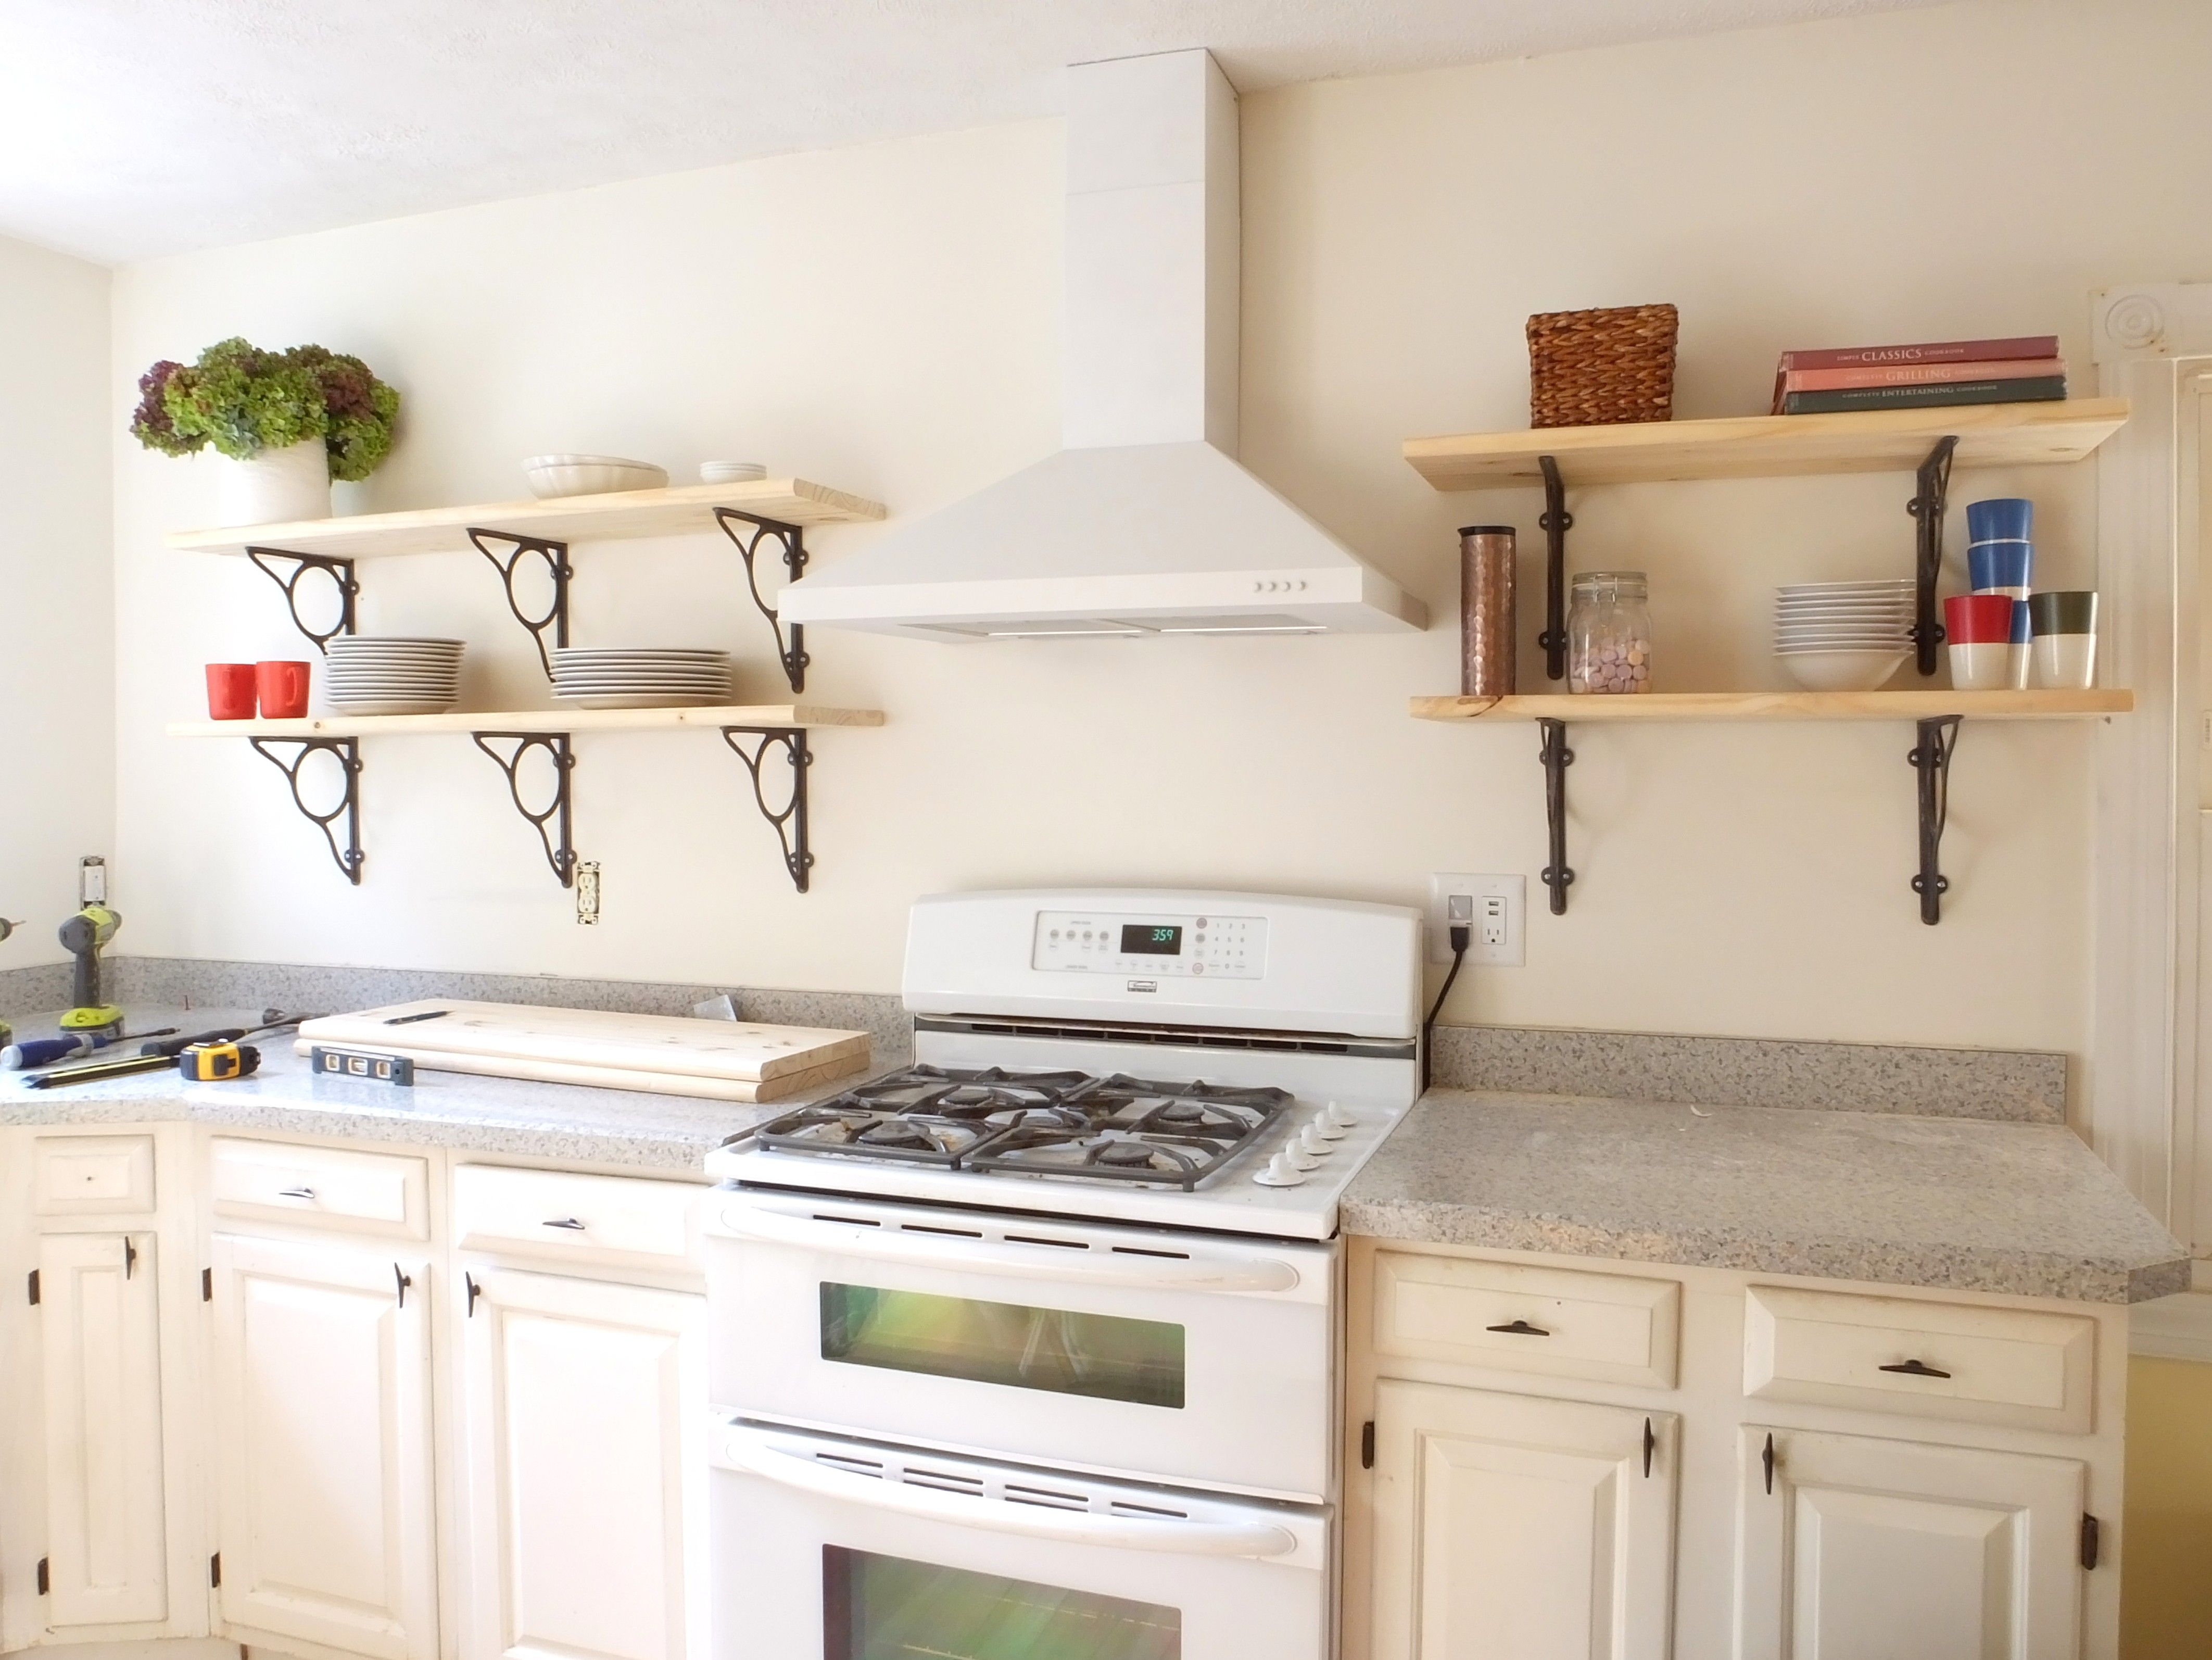 Excellent Kitchen Wall Shelving Ideas